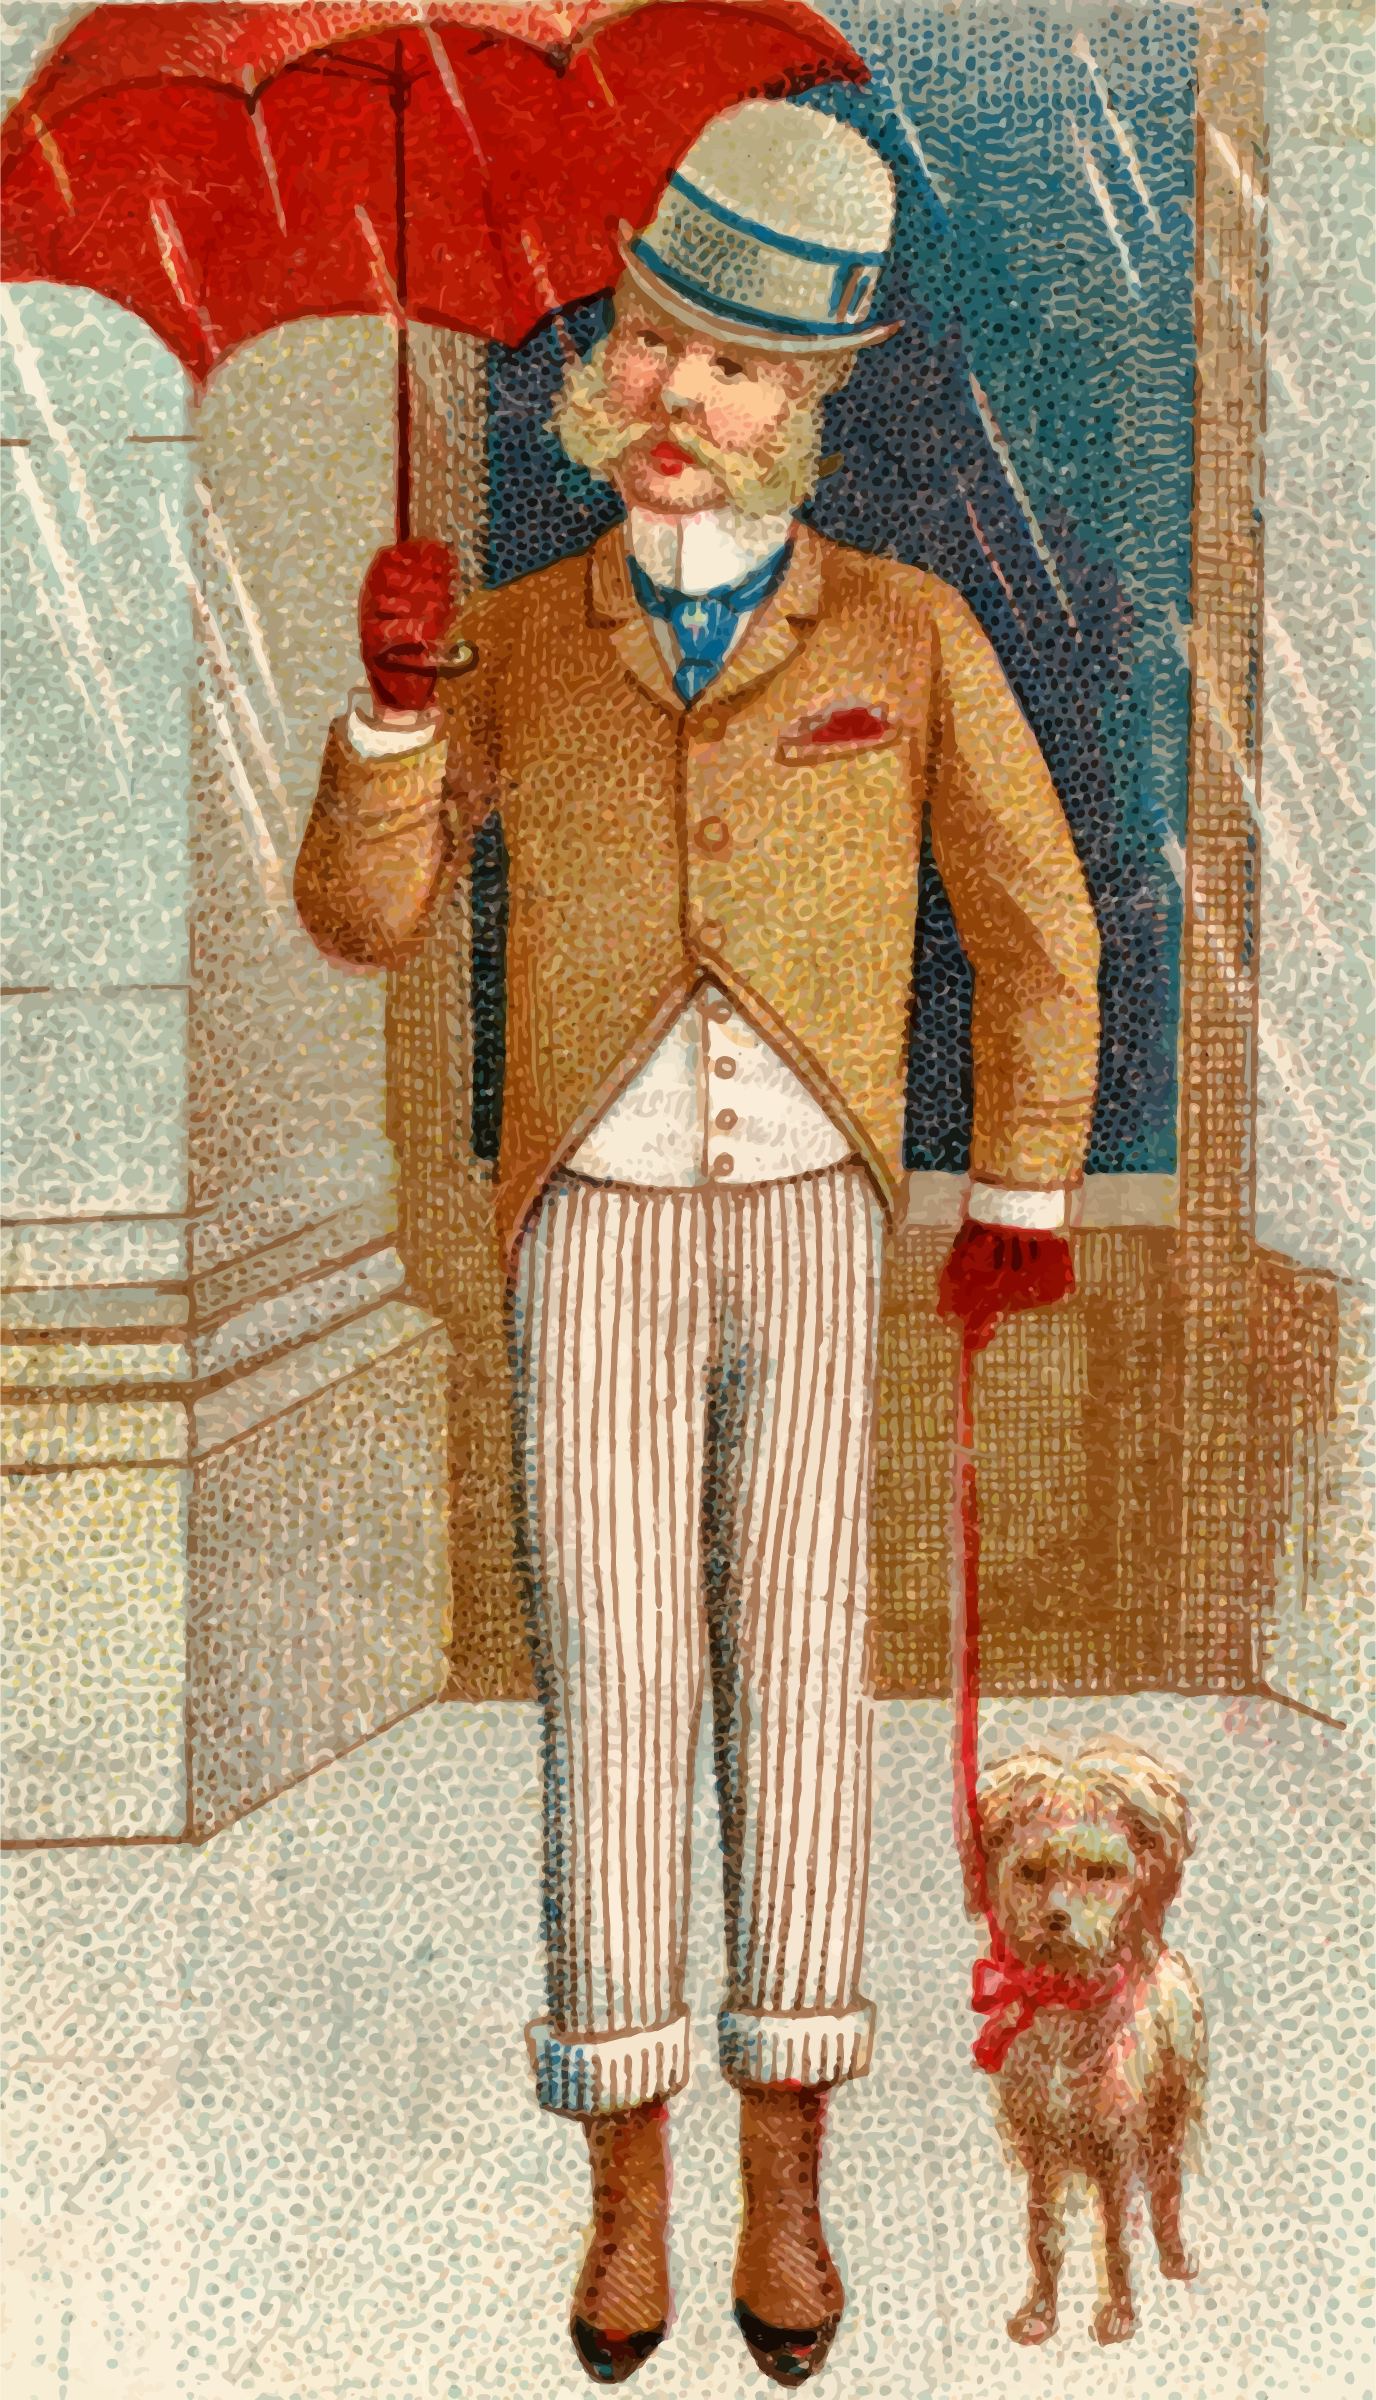 Cigarette card - London by Firkin